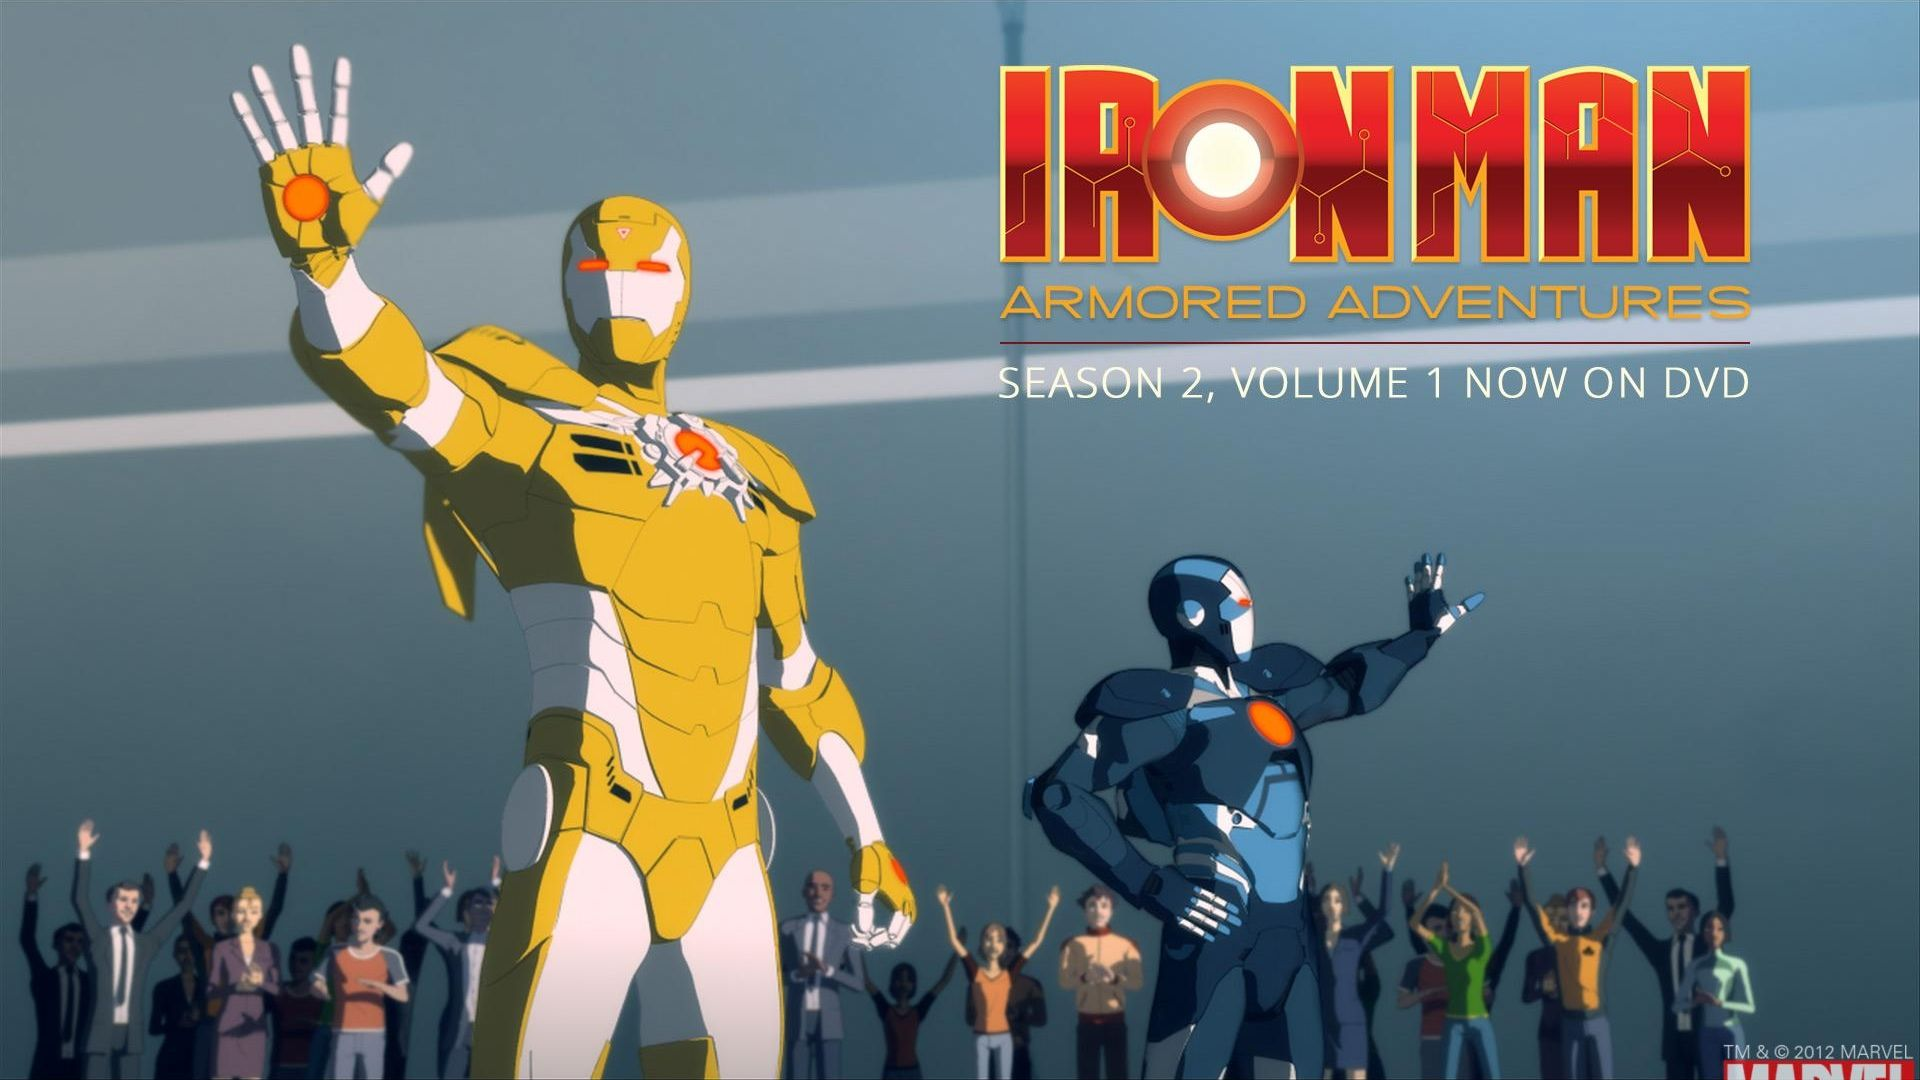 Free download Iron Man Armor Wallpapers [1920x1200] for your Desktop, Mobile & Tablet